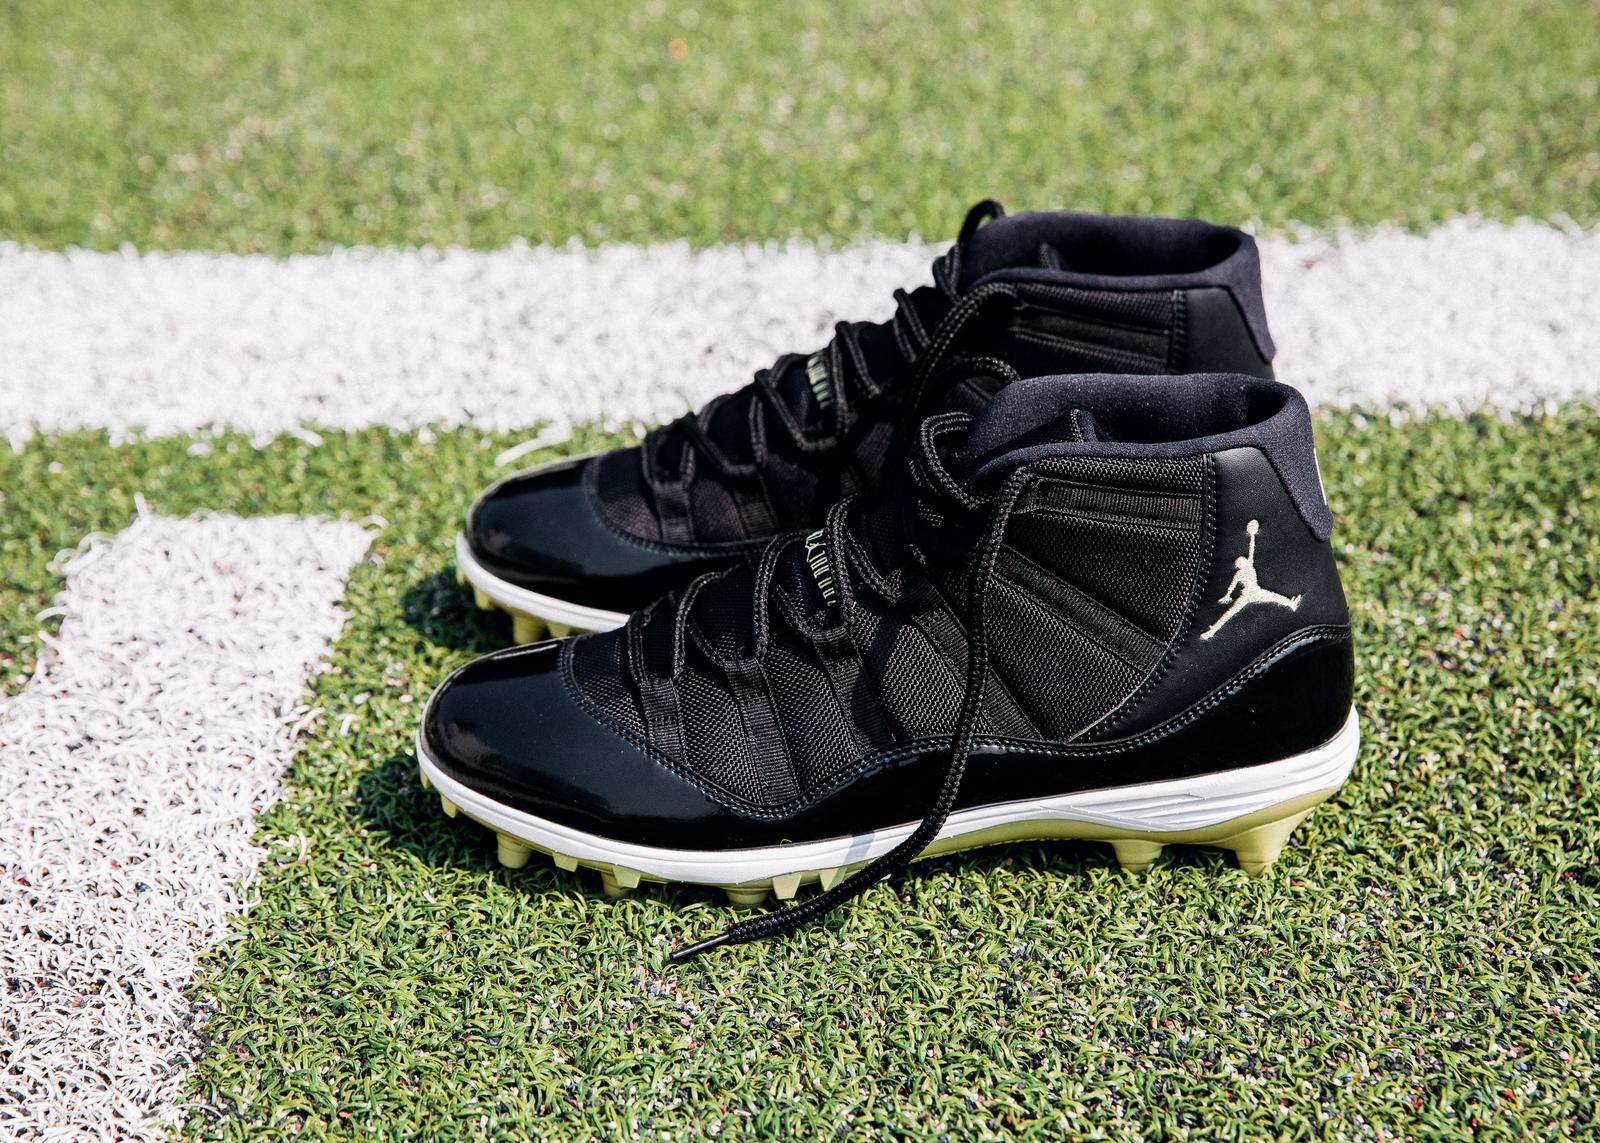 1a129628a The Jumpman Will Appear on NFL Fields for the First Time This Season — Here s  the. Jamal Adams (New York Jets safety). Jordan Brand Welcomes New Players  to ...